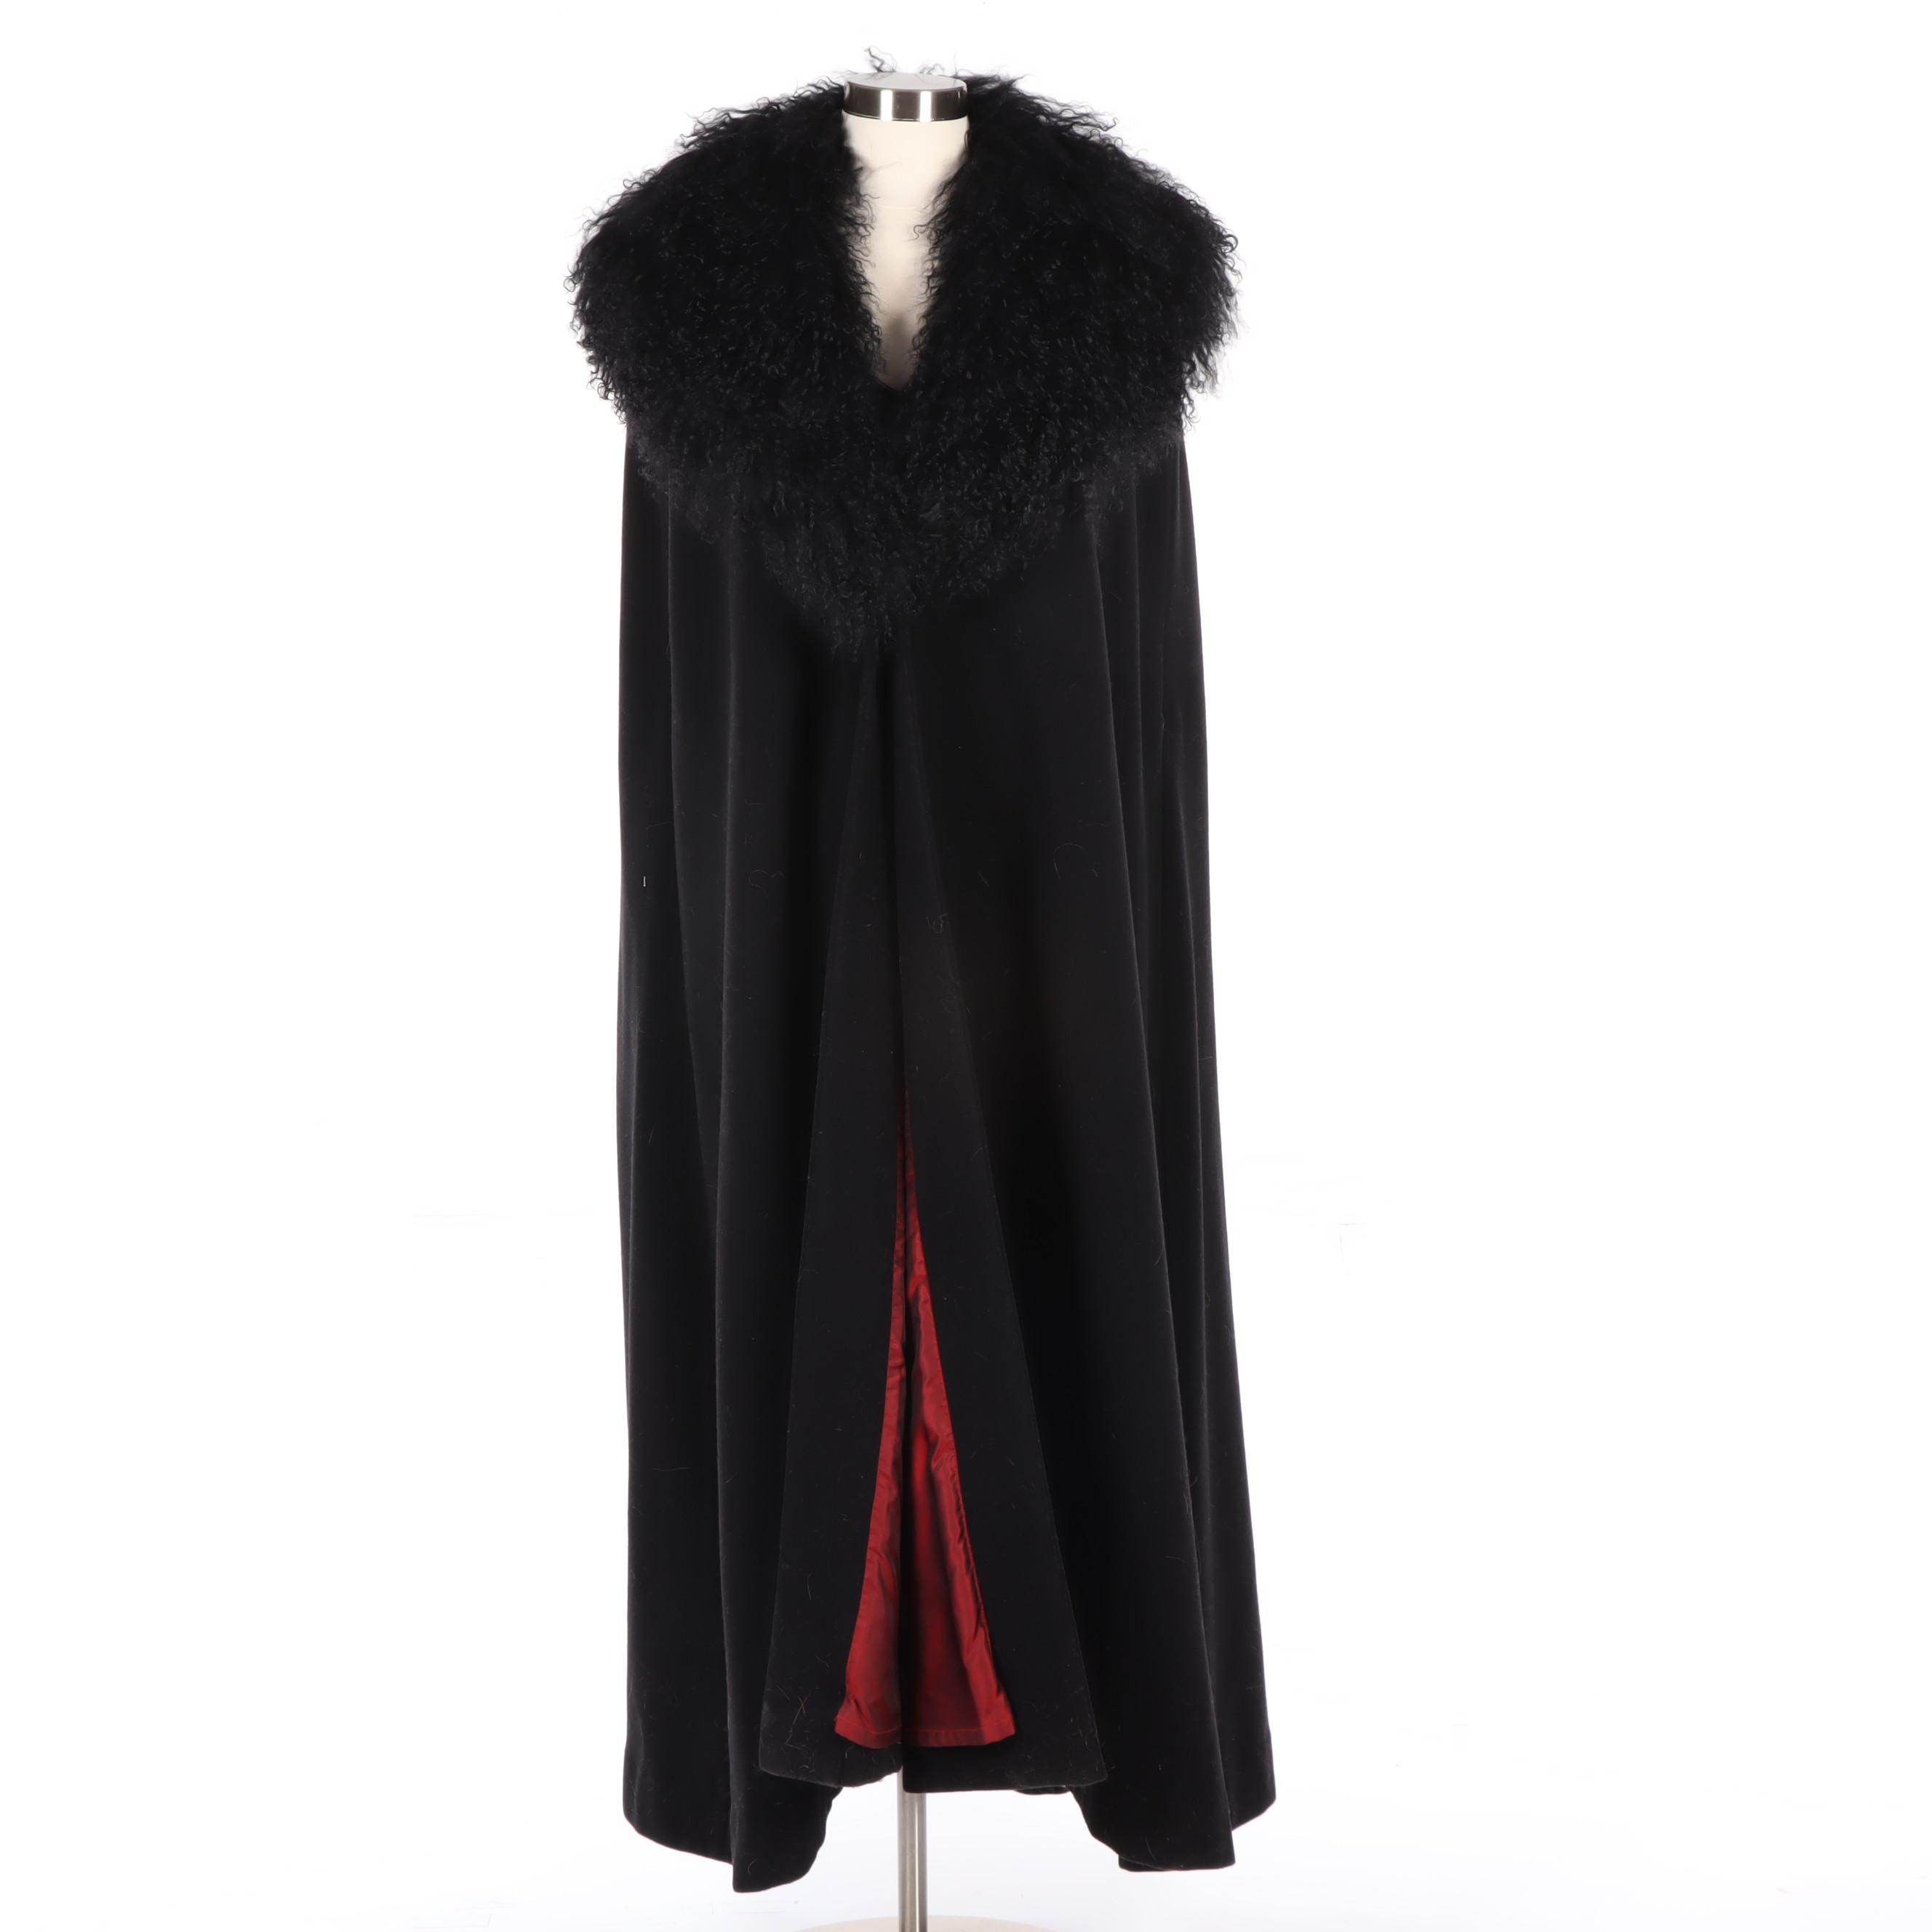 J. Peterman Black Wool and Cashmere Cloak with Mongolian Curly Lamb Fur Trim